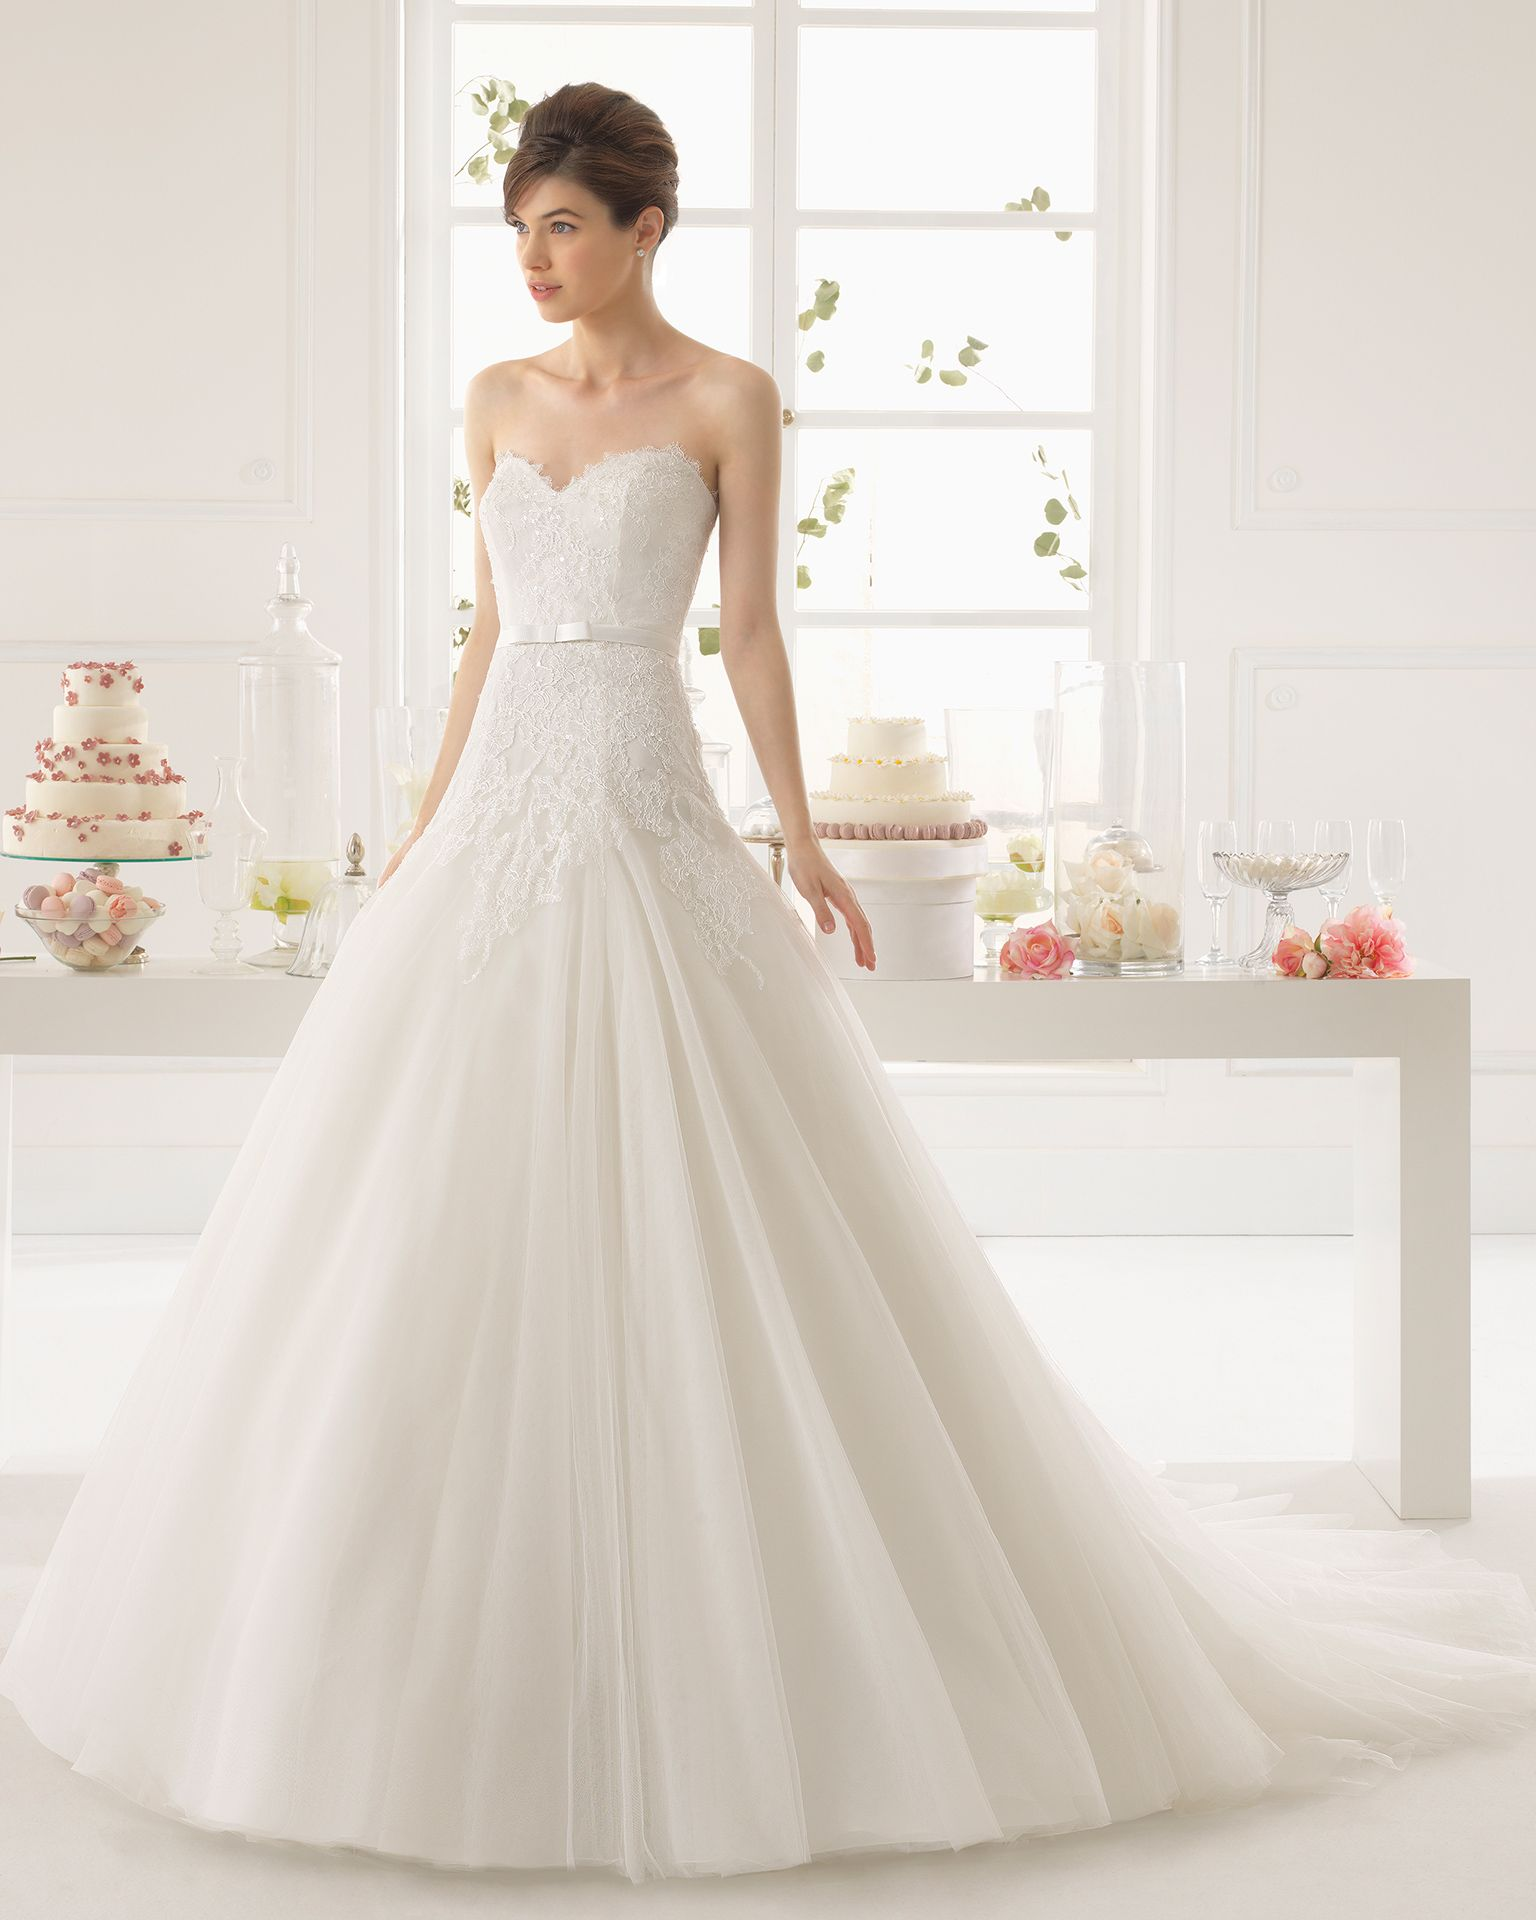 Aire by rosa clara 8c1f3 azorin find top designer wedding aire by rosa clara 8c1f3 azorin find top designer wedding dresses bridal ombrellifo Choice Image